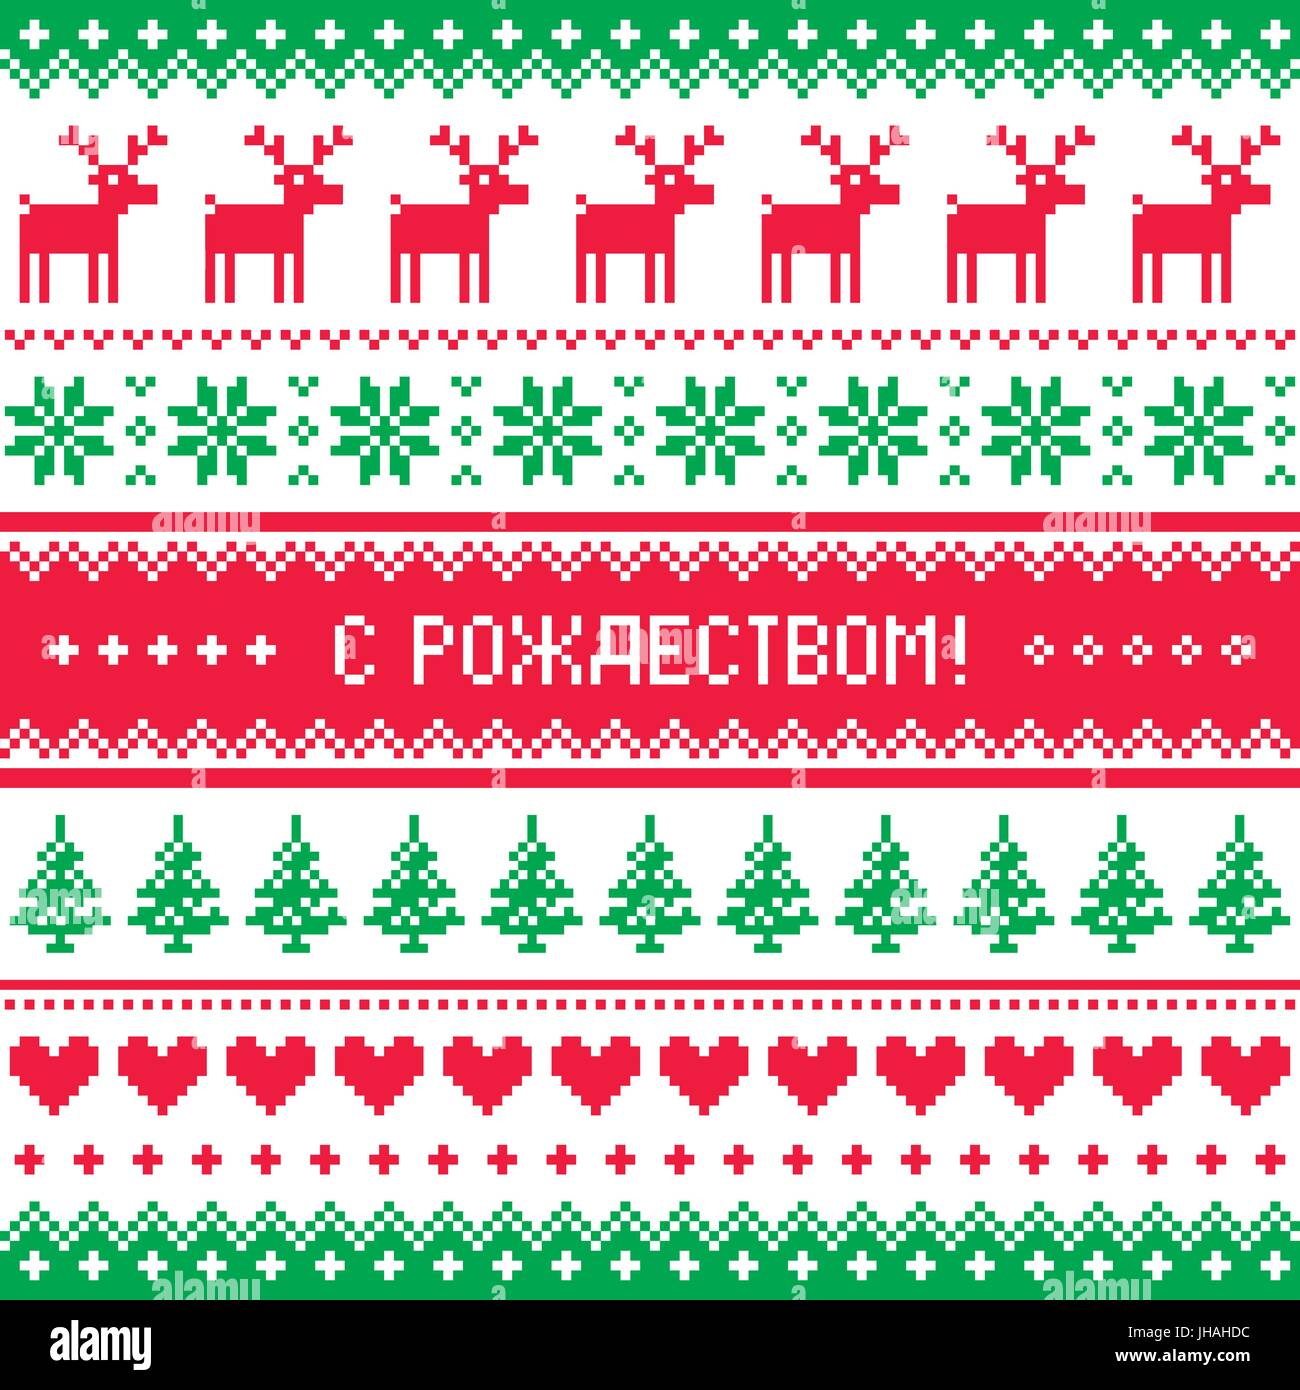 merry christmas in russian knitted pattern - Russian Merry Christmas